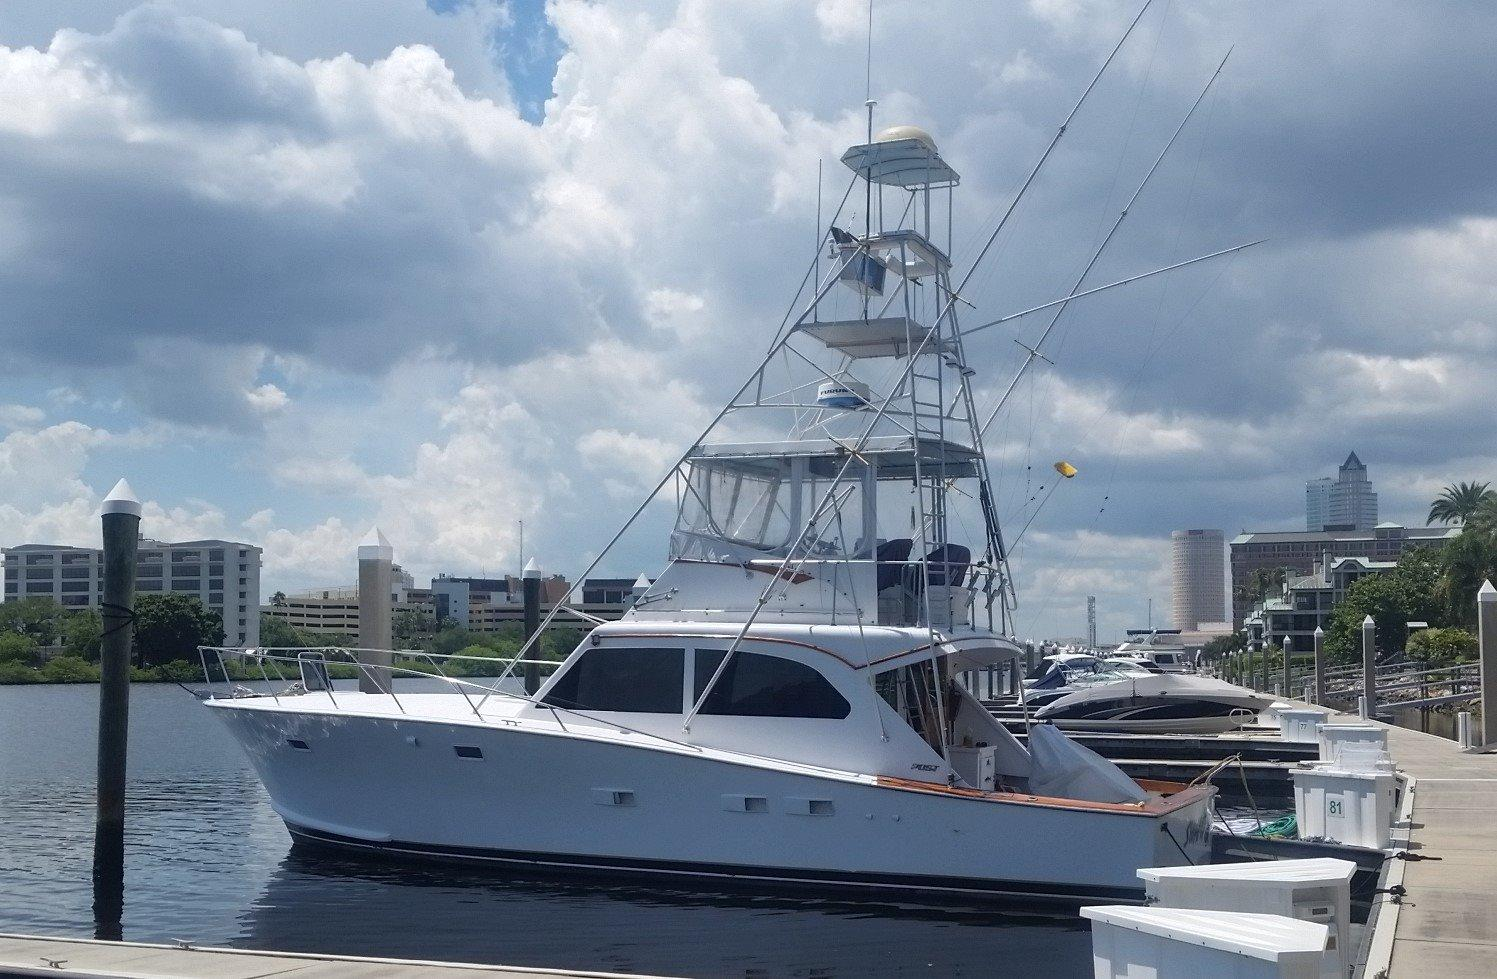 Boat Dealers Tampa >> 1975 Post 42 Sportfish Power Boat For Sale - www.yachtworld.com